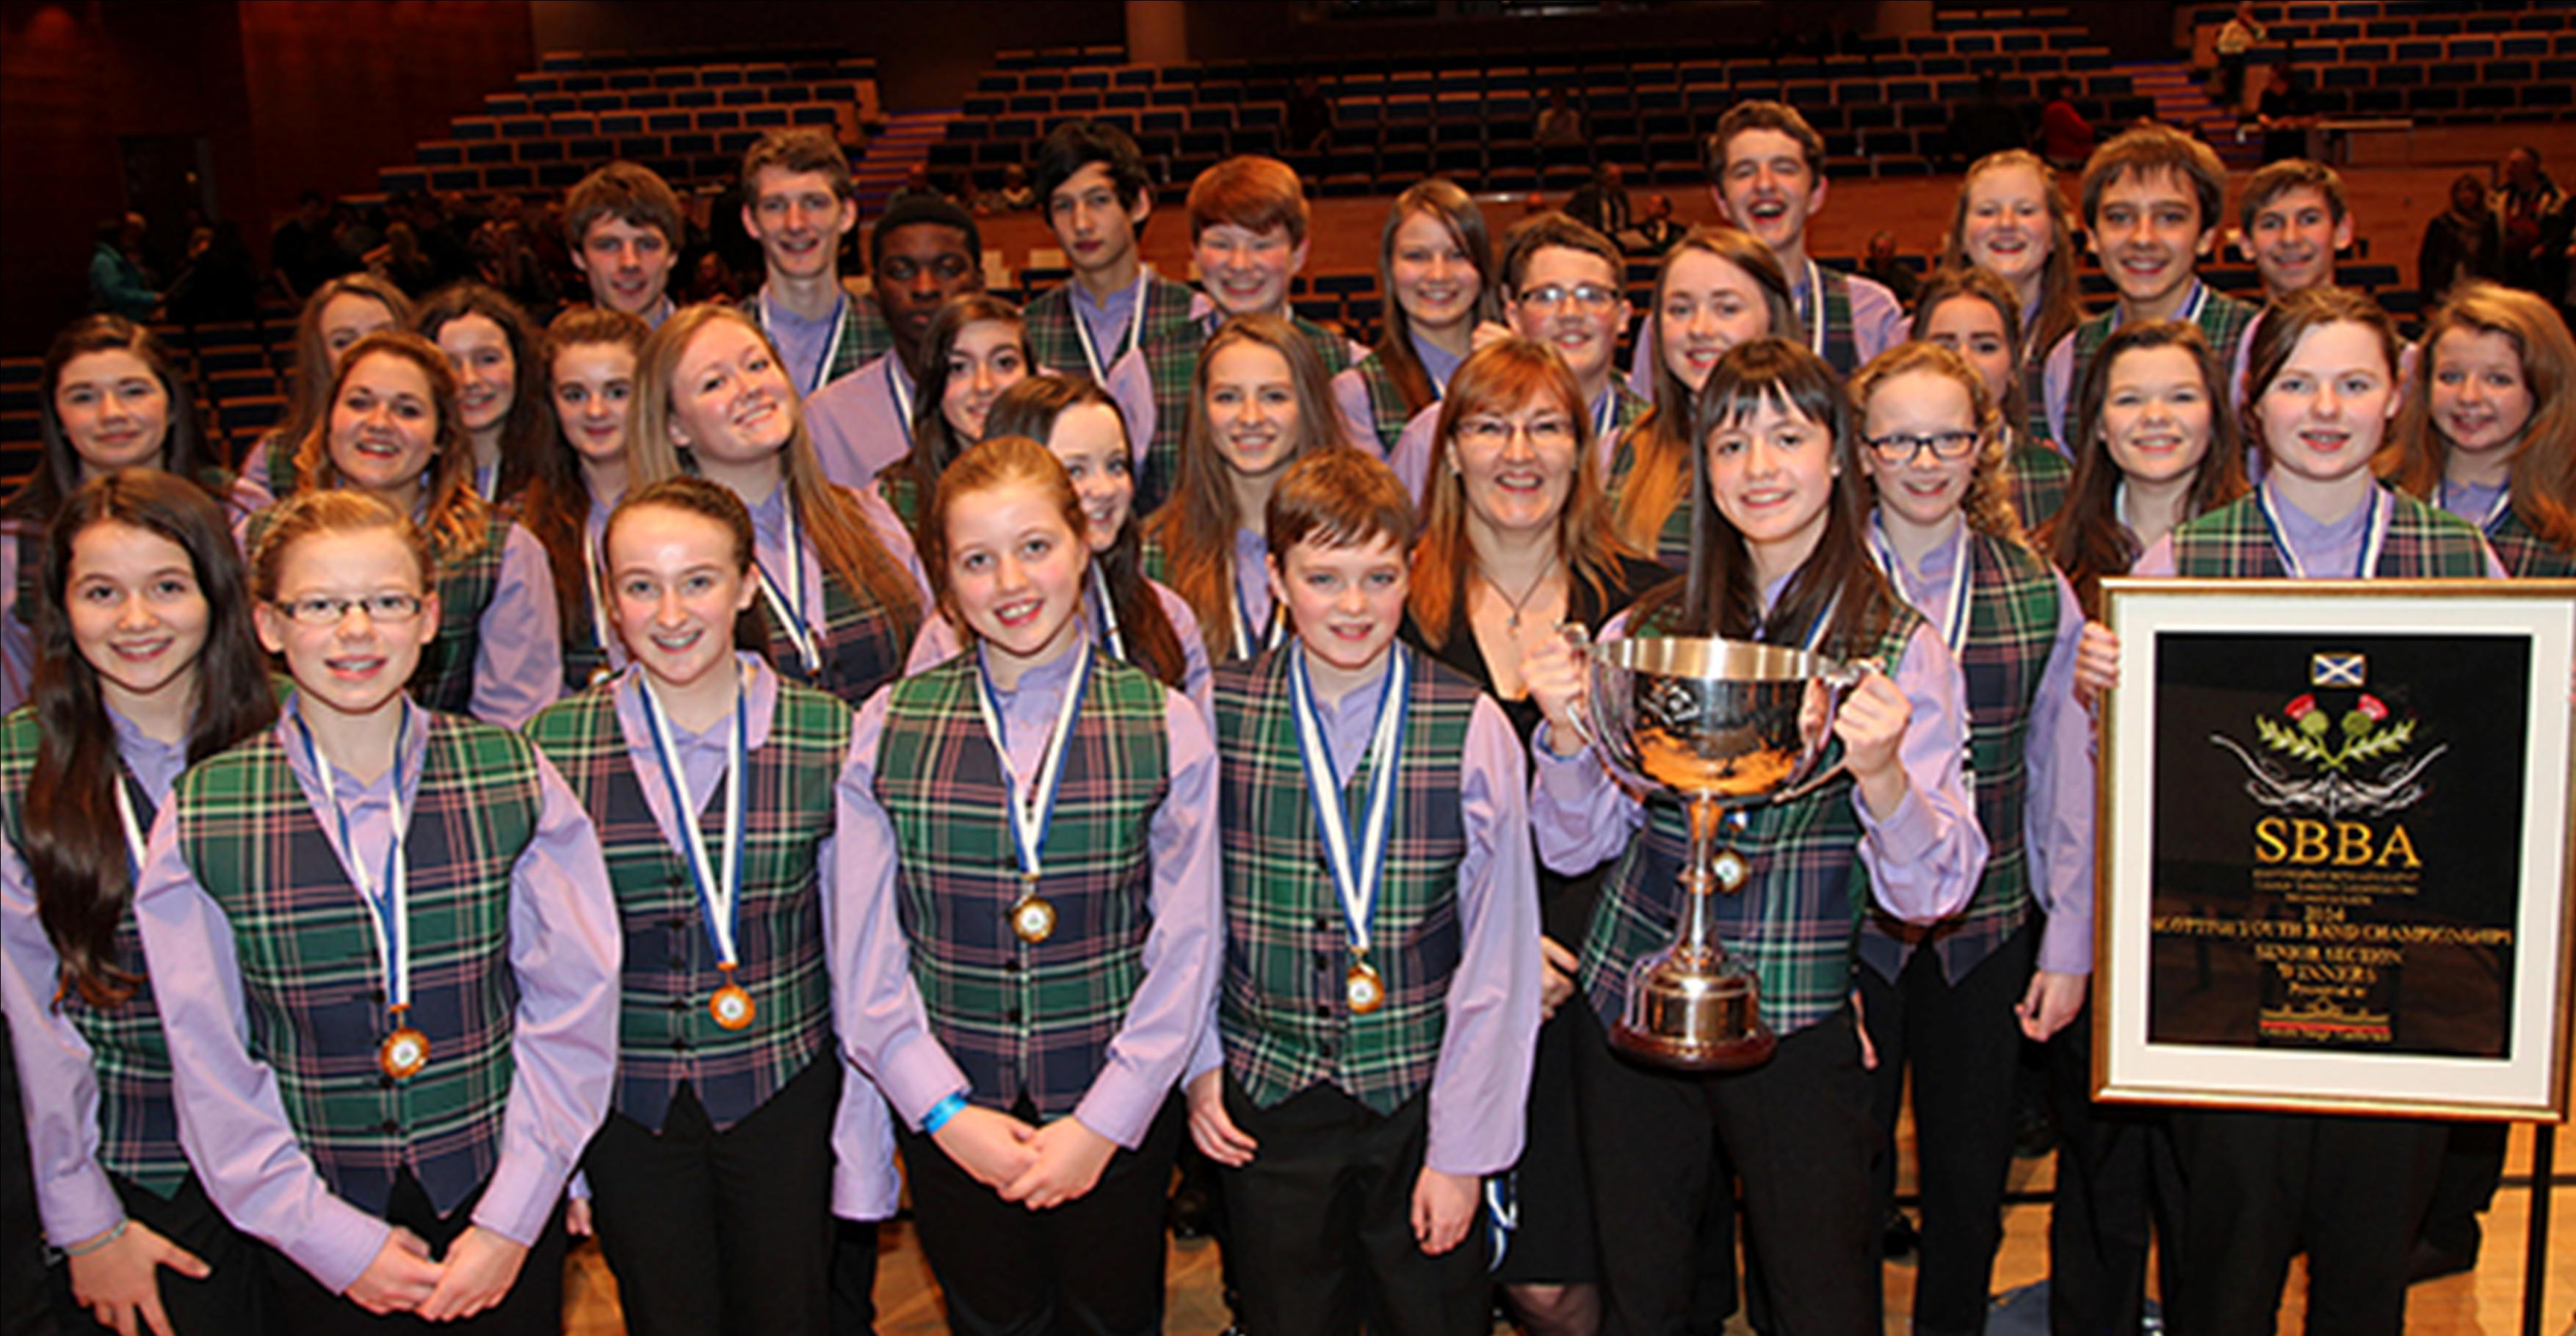 West Lothian Schools Brass Band